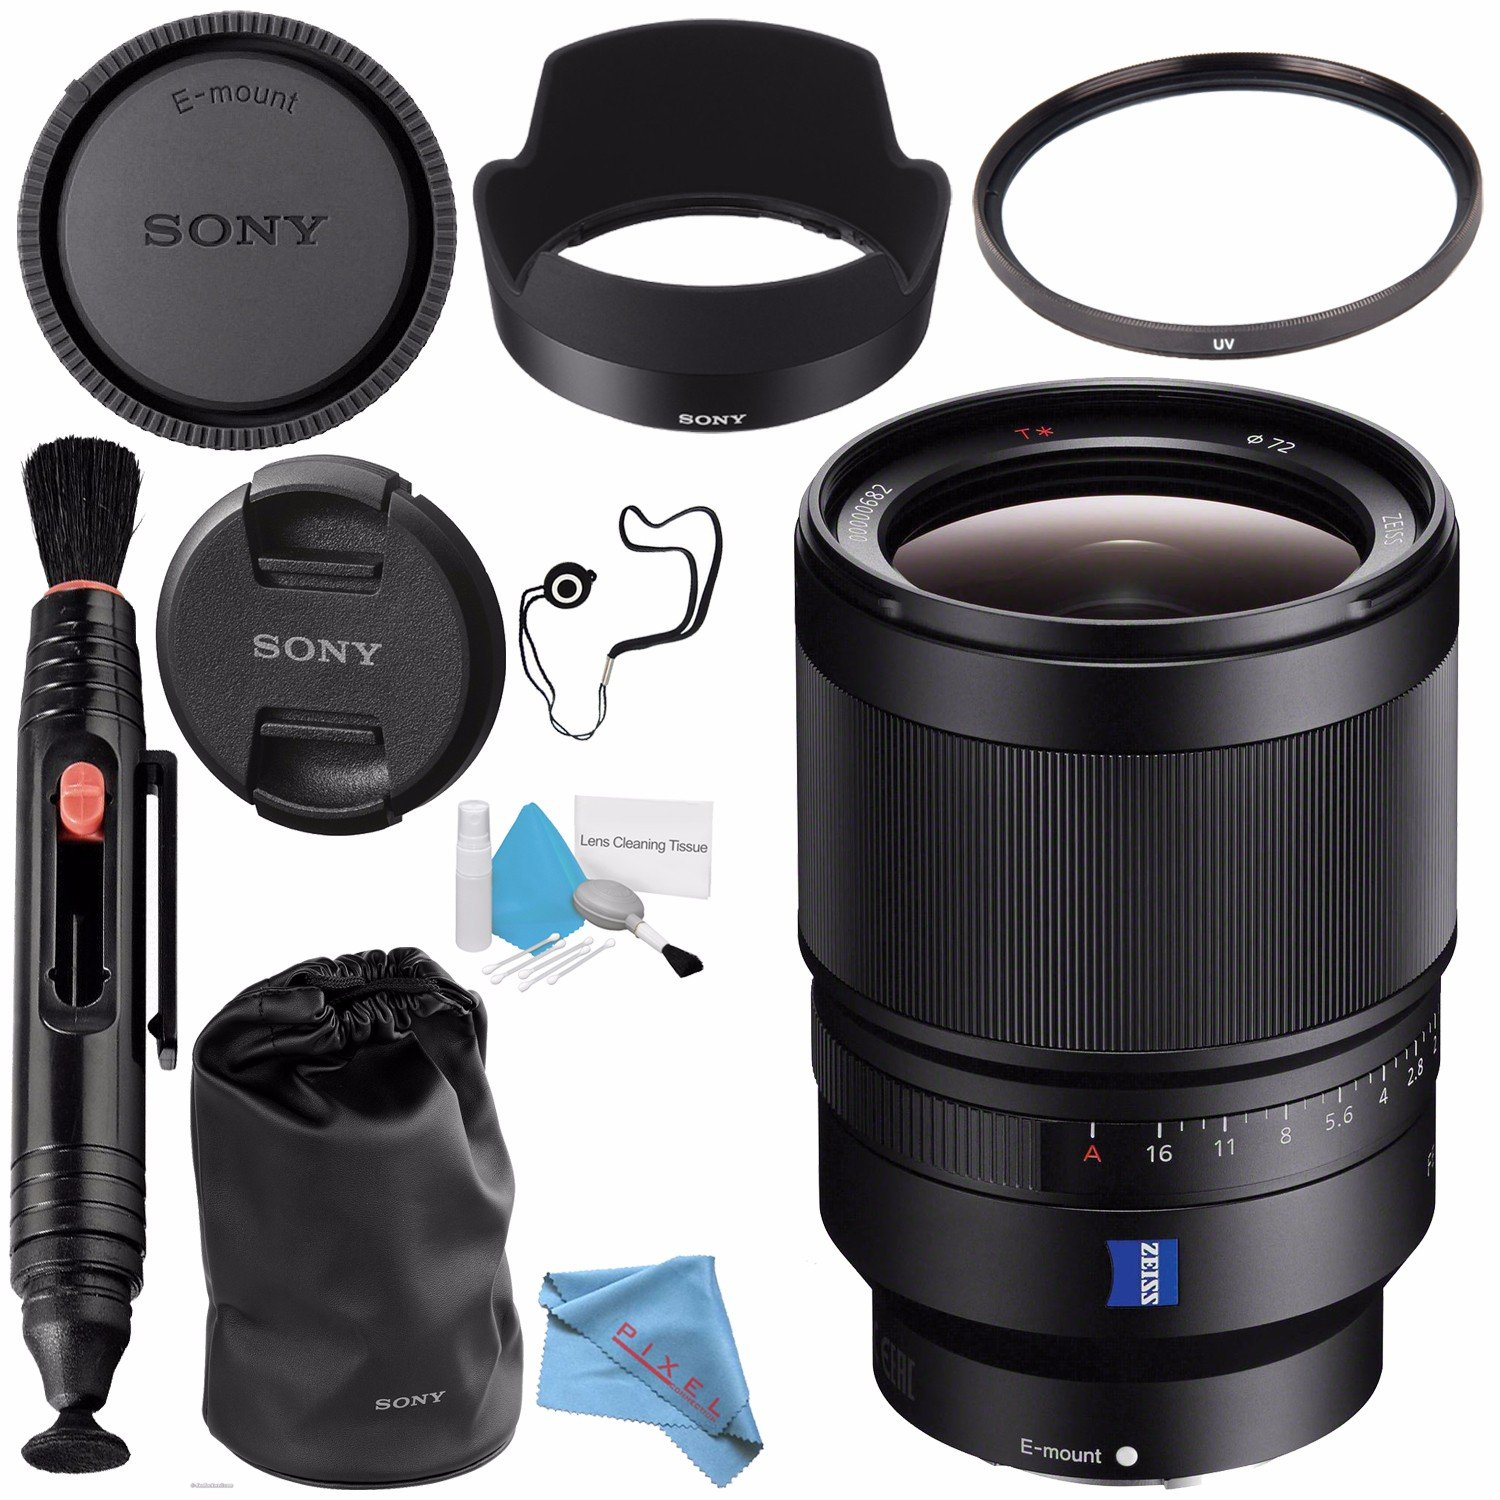 Sony Distagon T Fe 35mm F 14 Za Lens Sel35f14z 72mm Uv Filter Pen Cleaner Fibercloth Capkeeper Deluxe Cleaning Kit Bundle